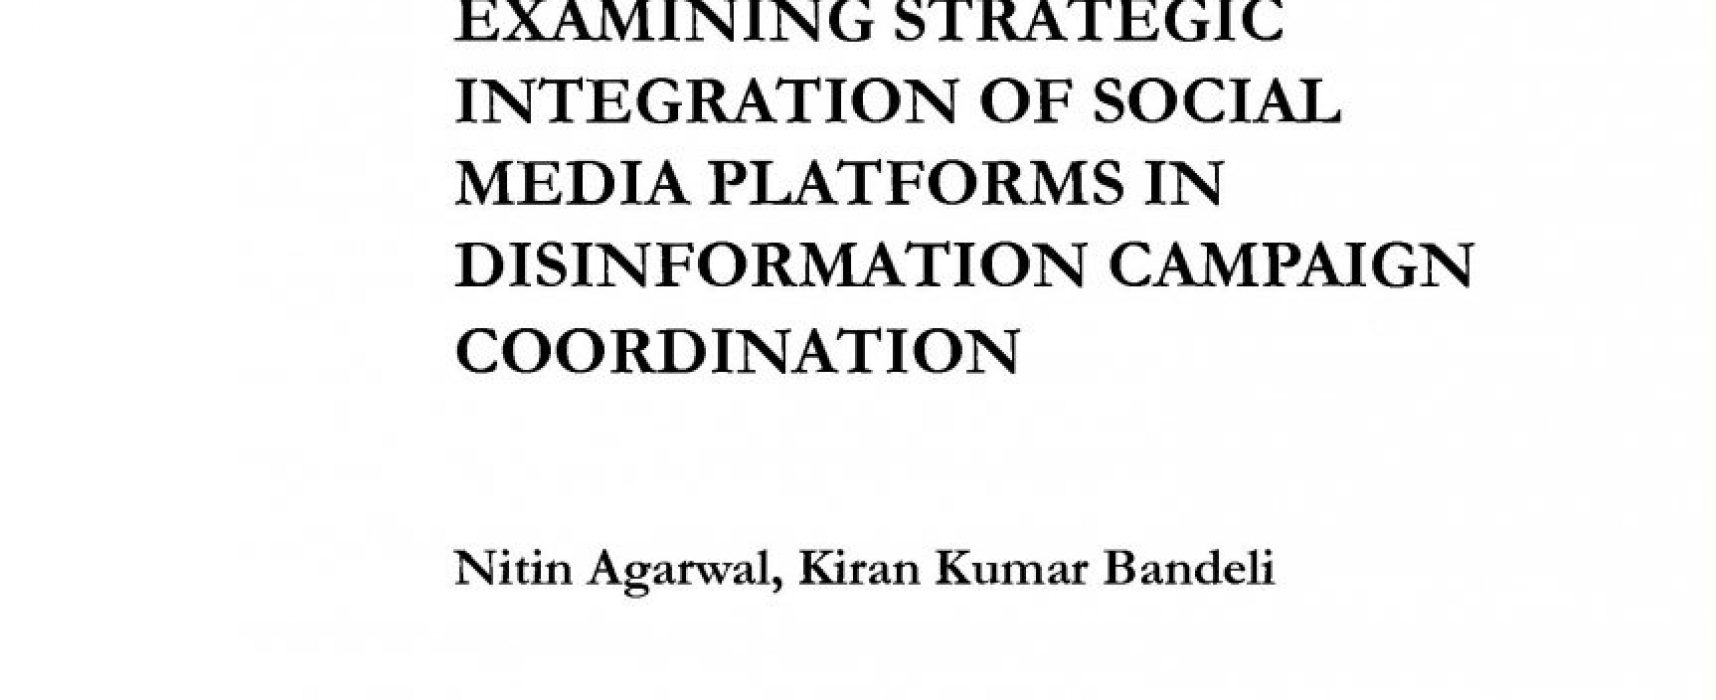 Nitin Agarwal, Kiran Kumar Bandeli. Examining strategic integration of social media platforms in disinformation campaign coordination